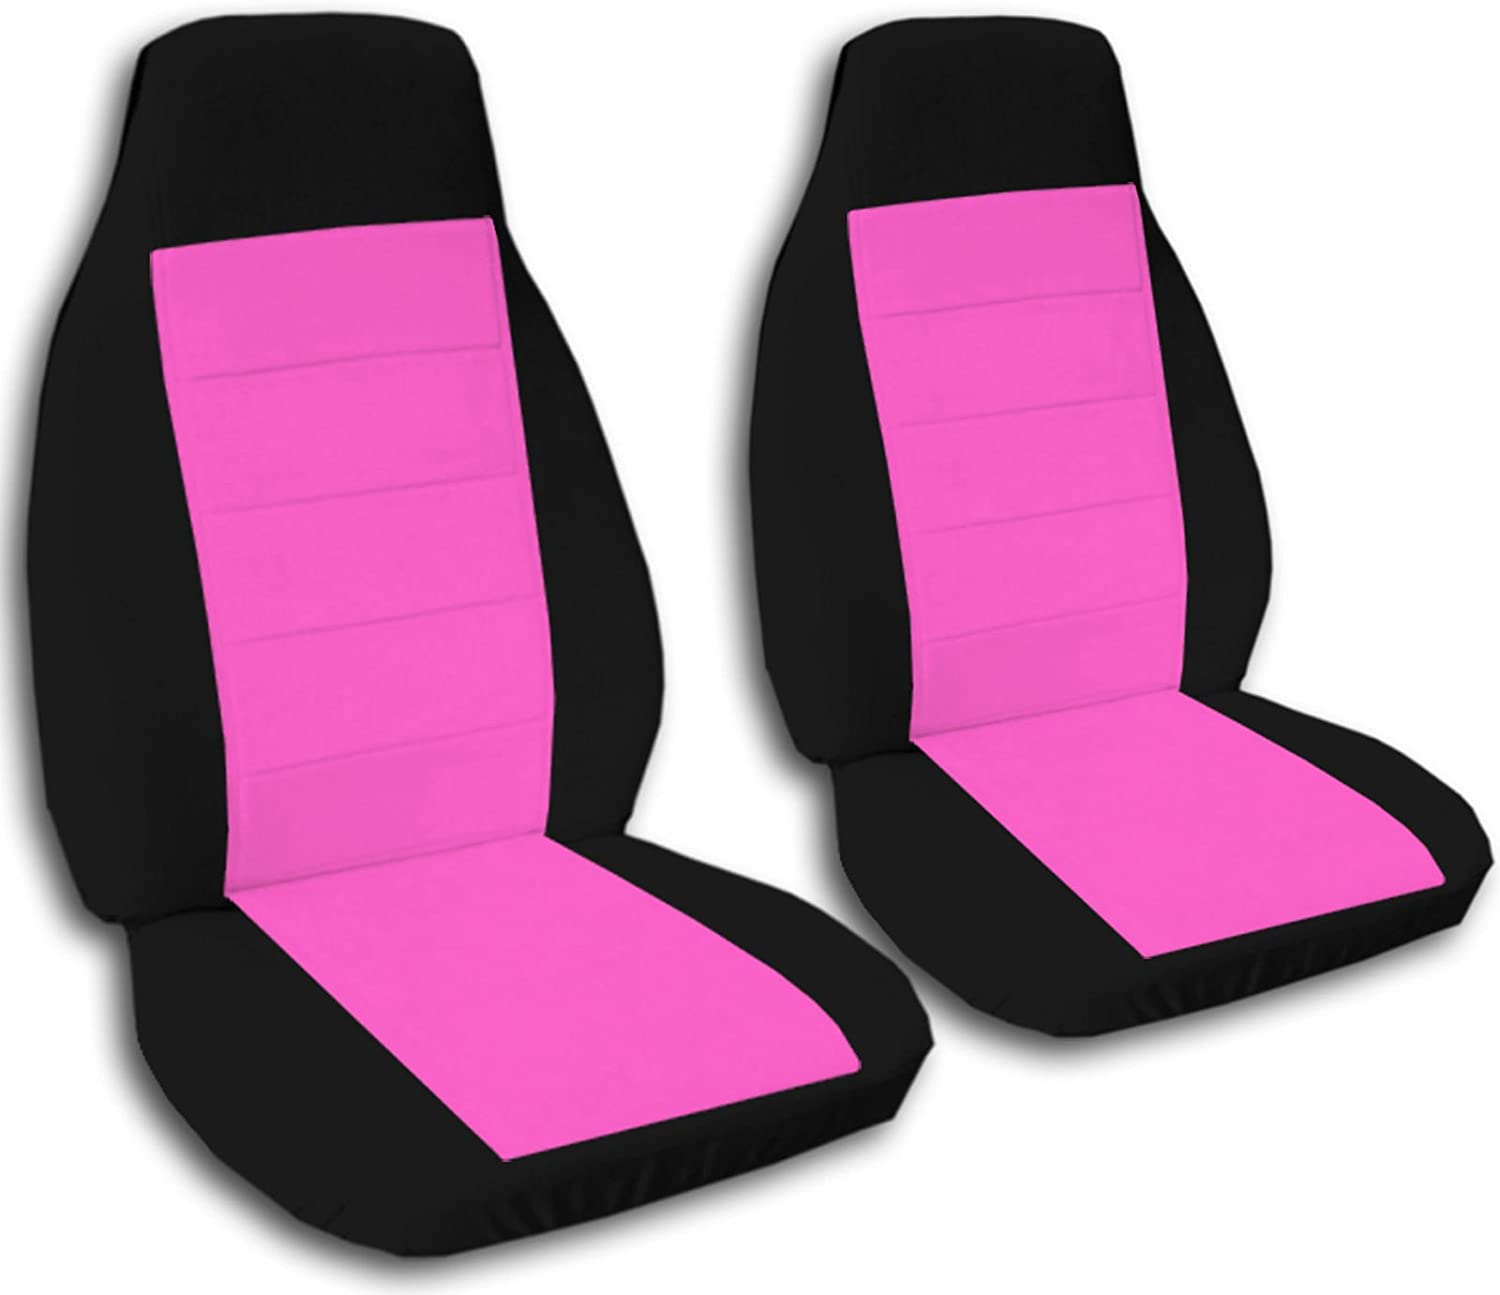 Totally Covers Compatible with 2004-2012 Chevy Colorado/GMC Canyon Two-Tone Truck Bucket Seat Covers: Black and Hot Pink (21 Colors) Chevrolet